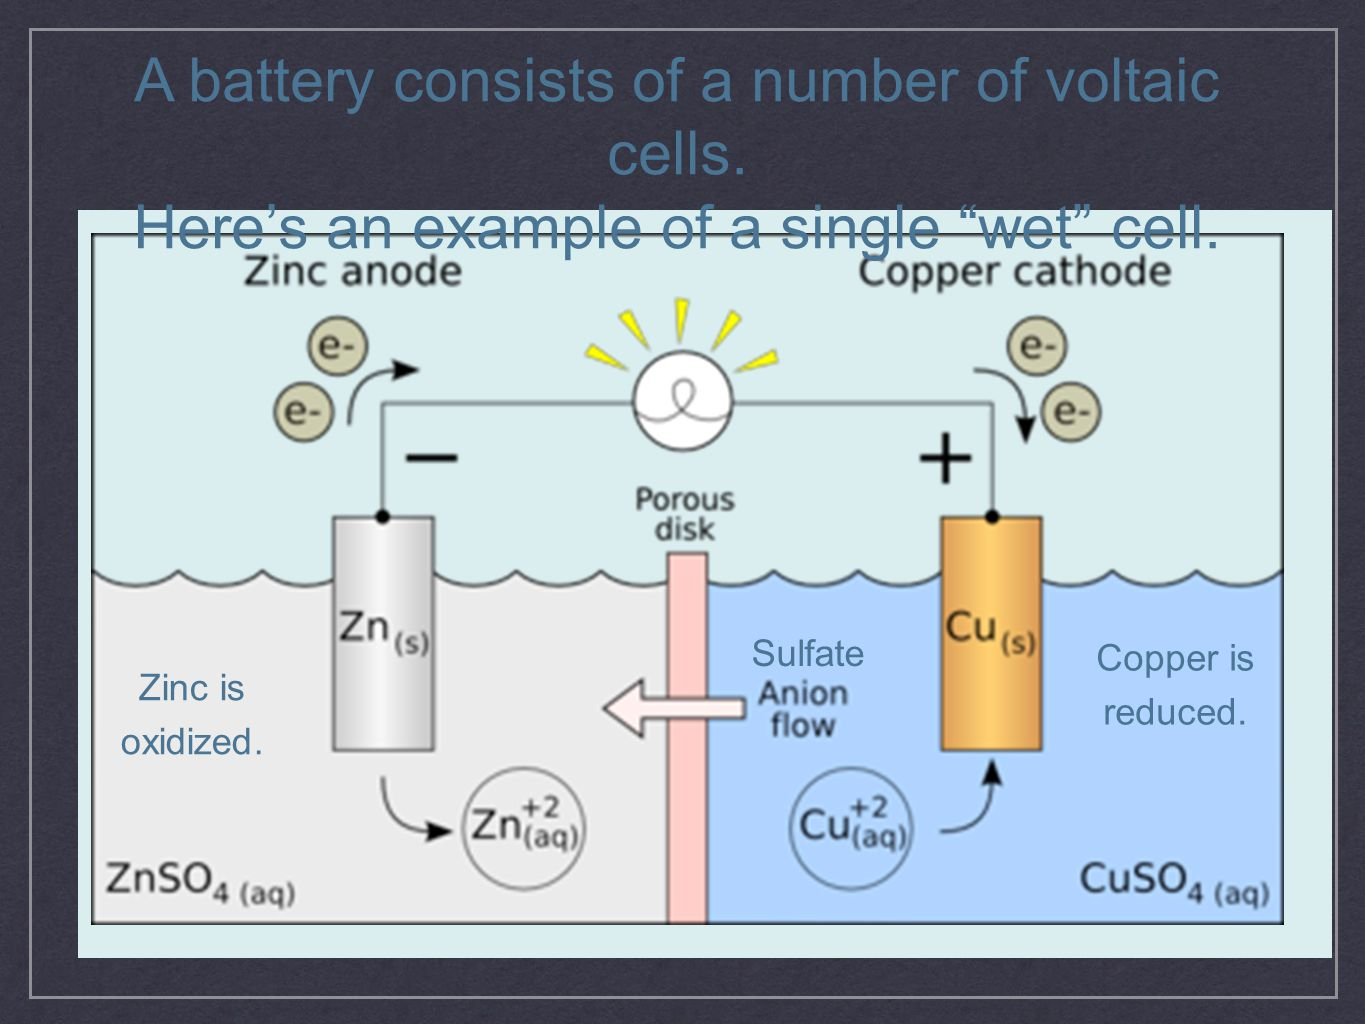 A battery consists of a number of voltaic cells.